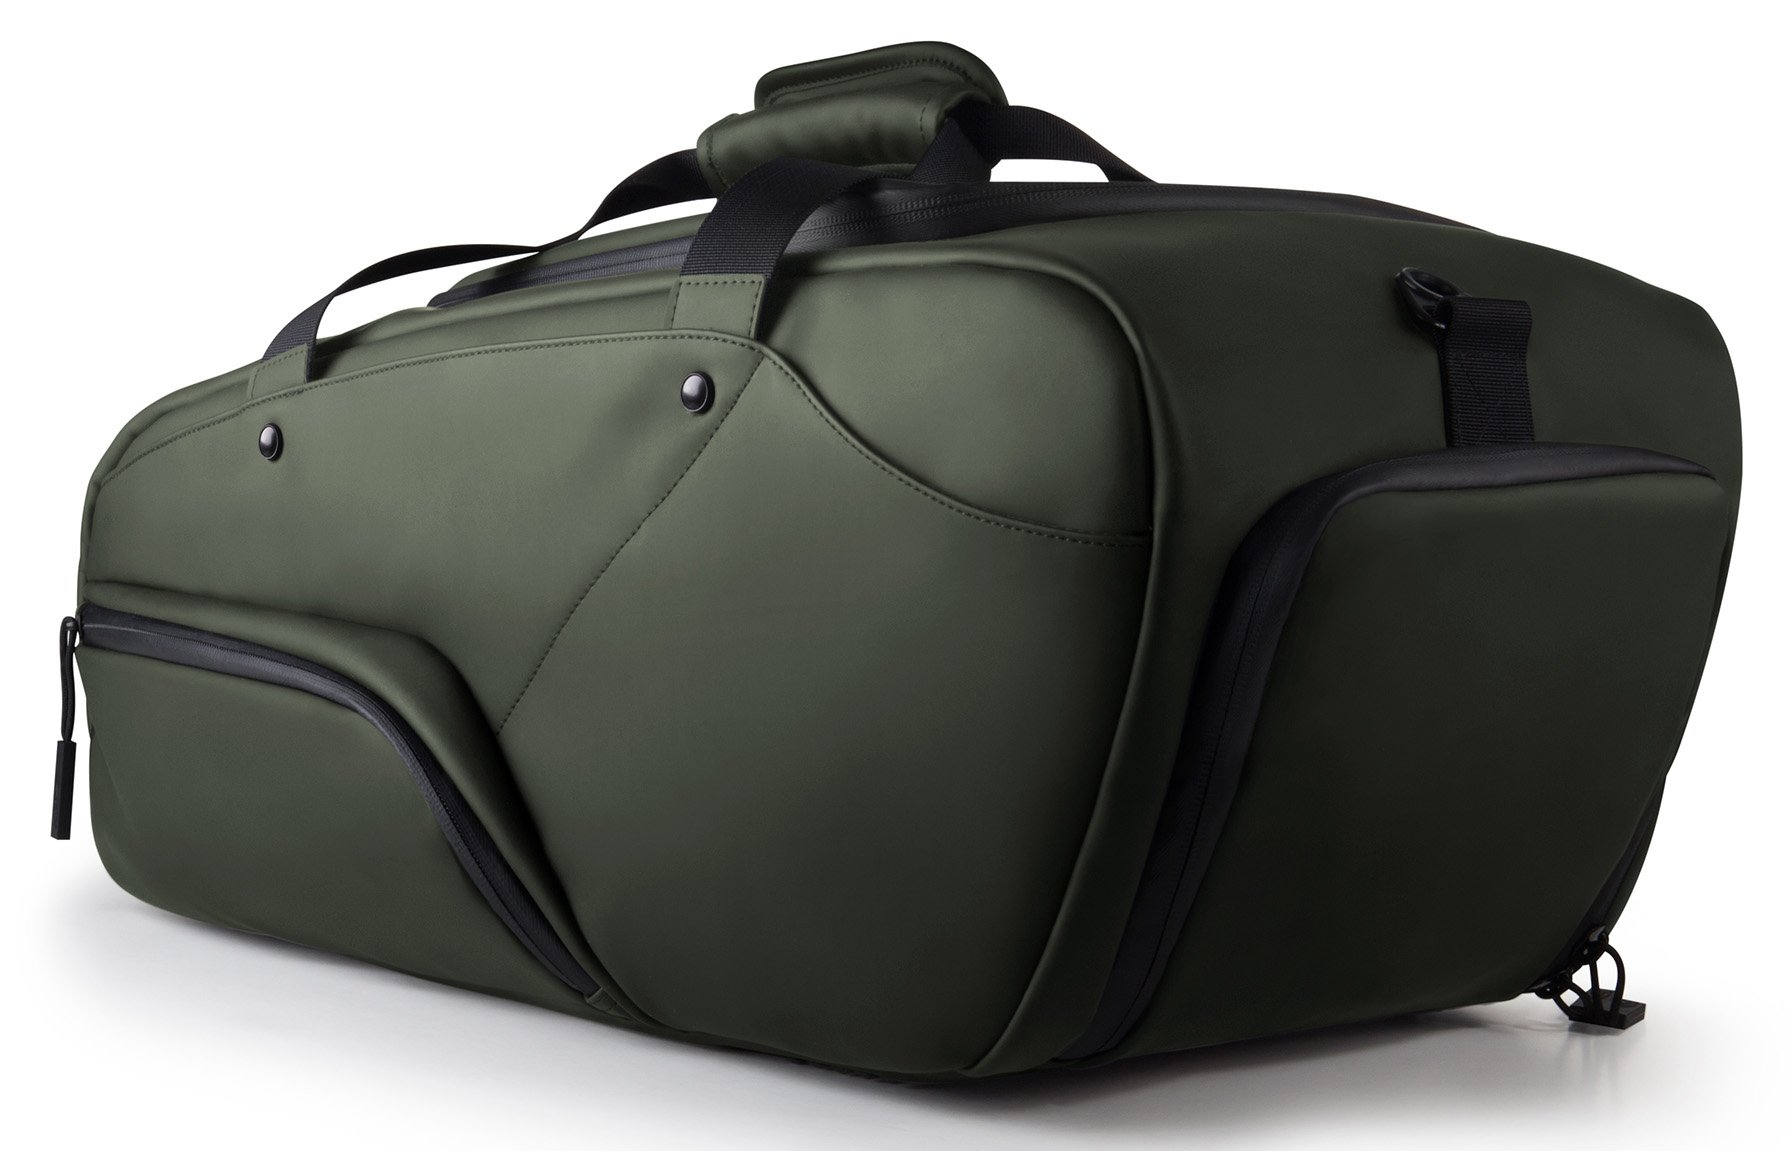 KP Duffle - The Ultimate Travel Bag (Army Green)